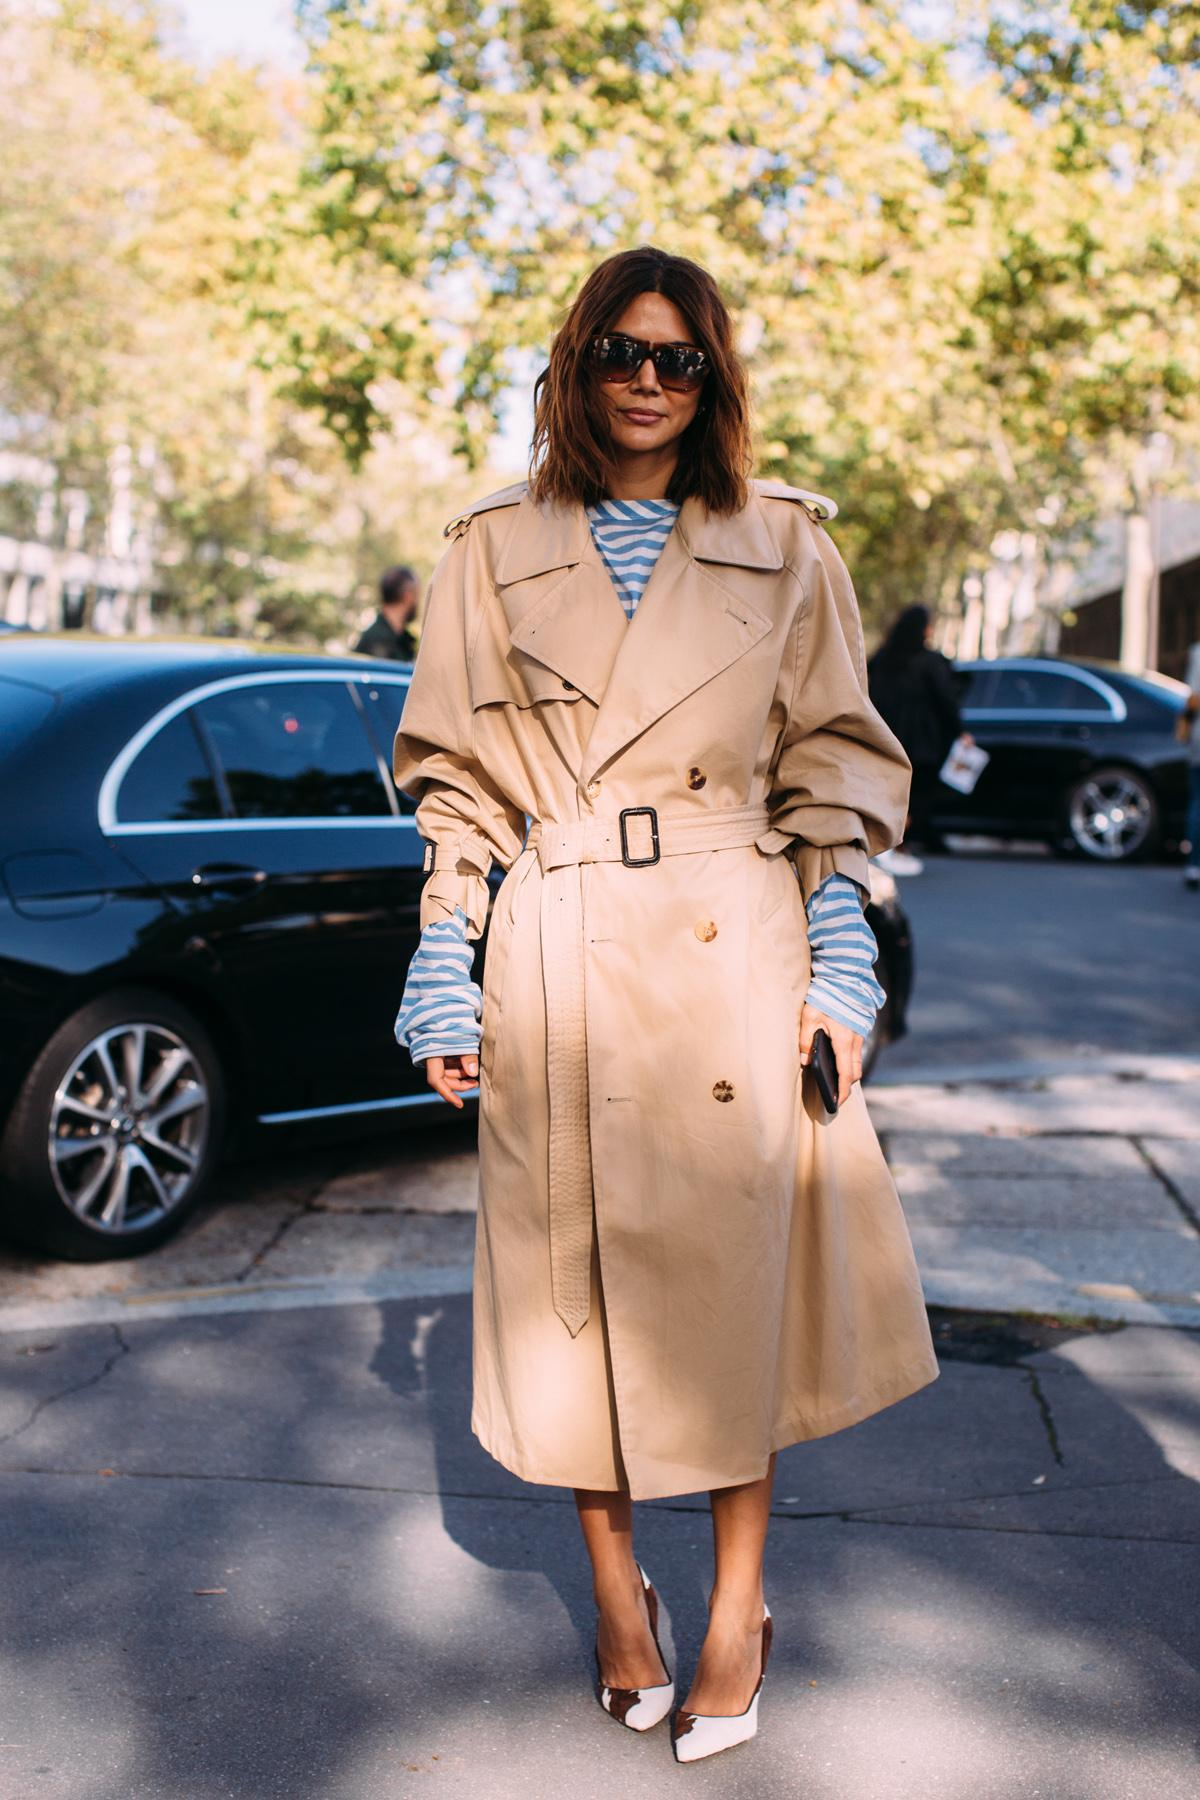 Parisienne trench coat